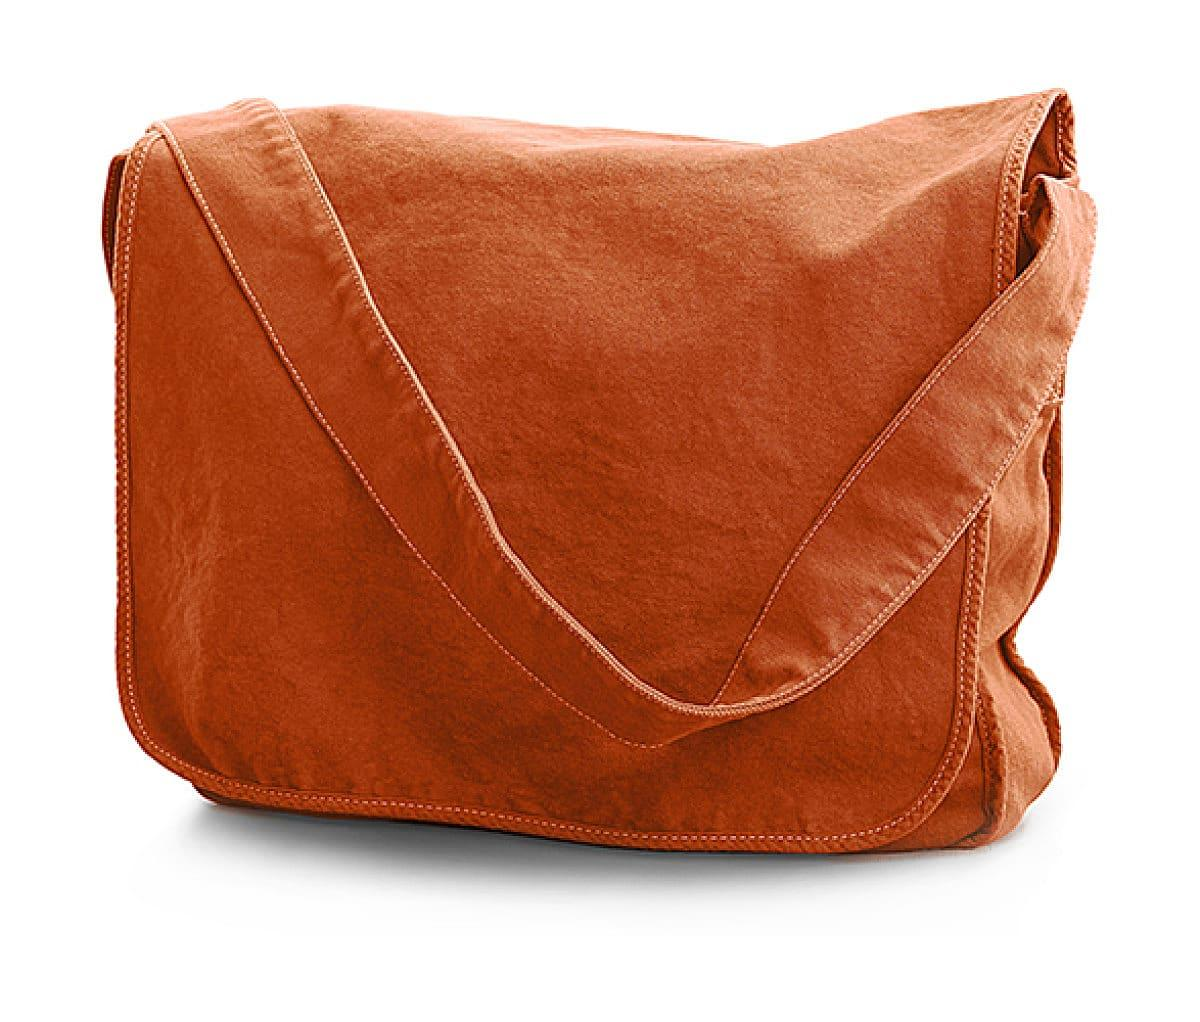 Jassz Bags Canvas Messenger Bag in Autumn Maple (Product Code: CA37309MB)